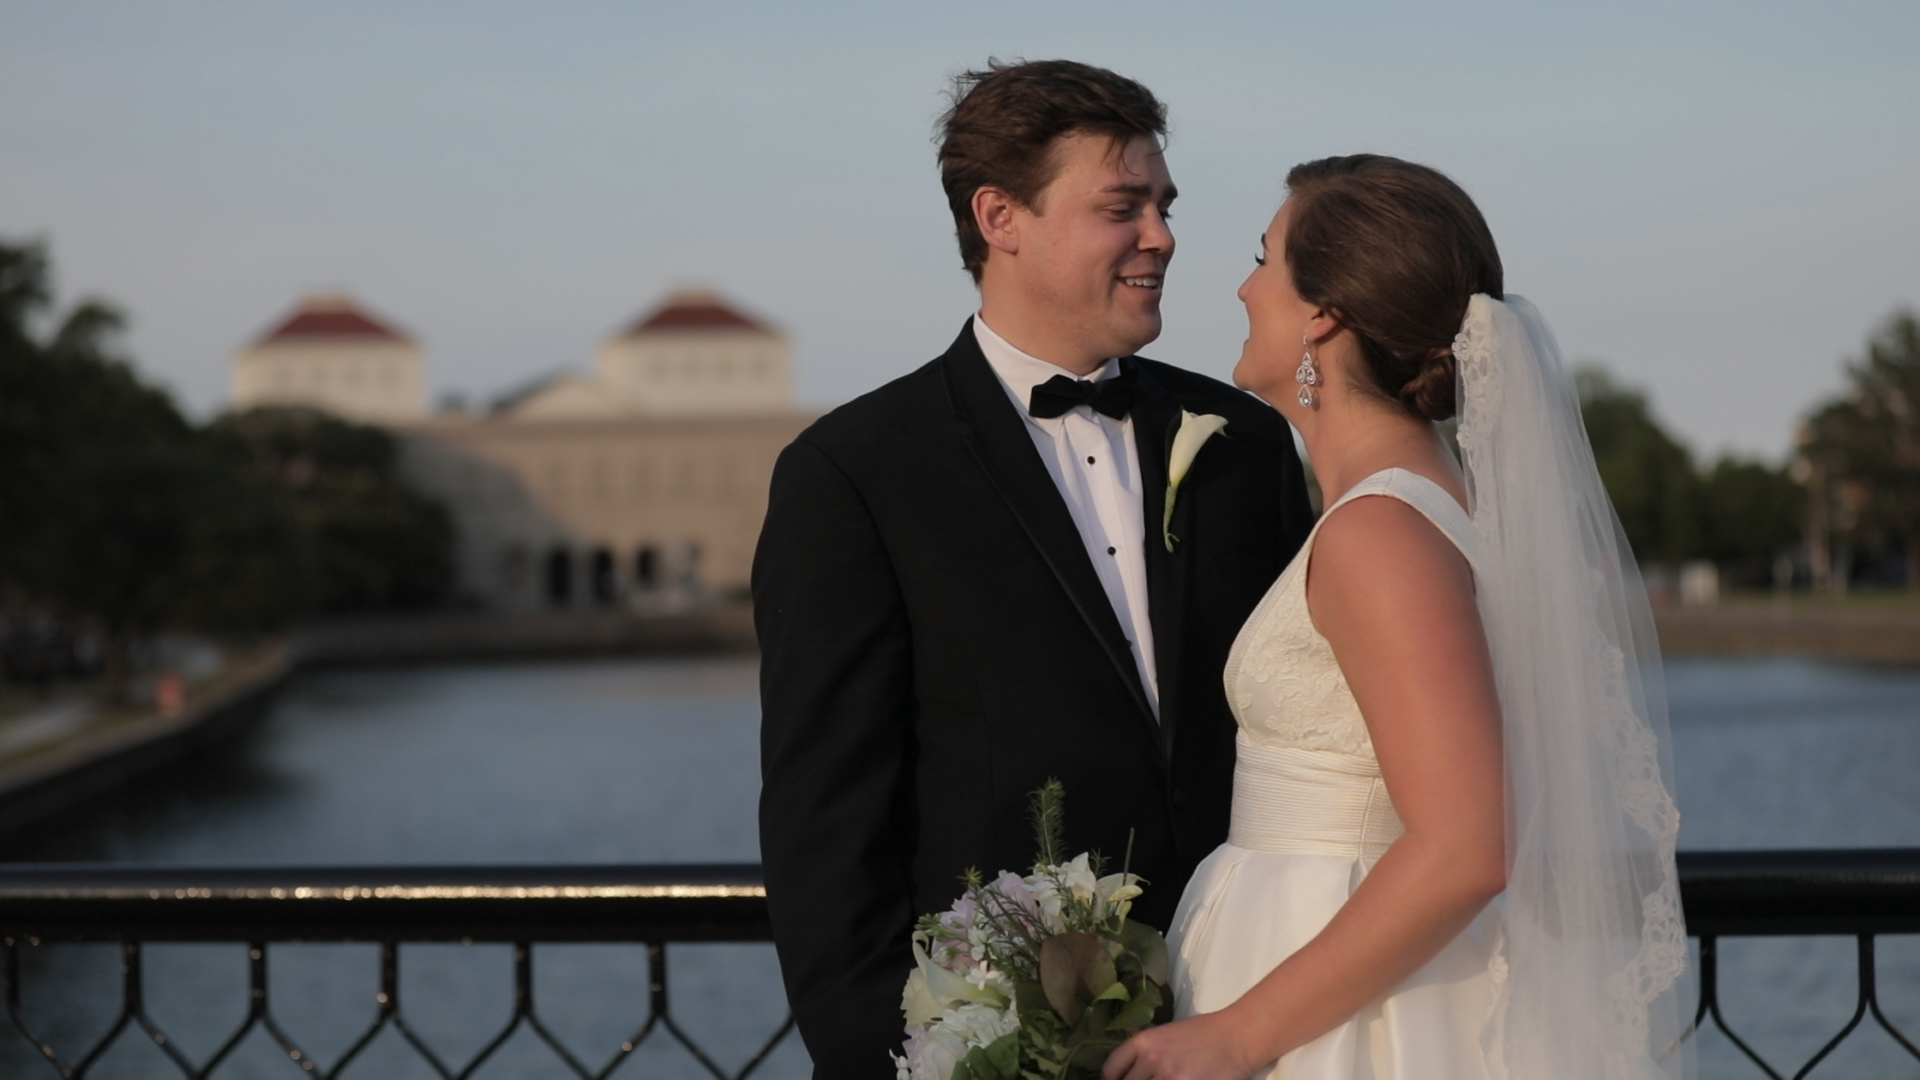 Kali + Ryan | Norfolk, Virginia | Chrysler Museum of Art